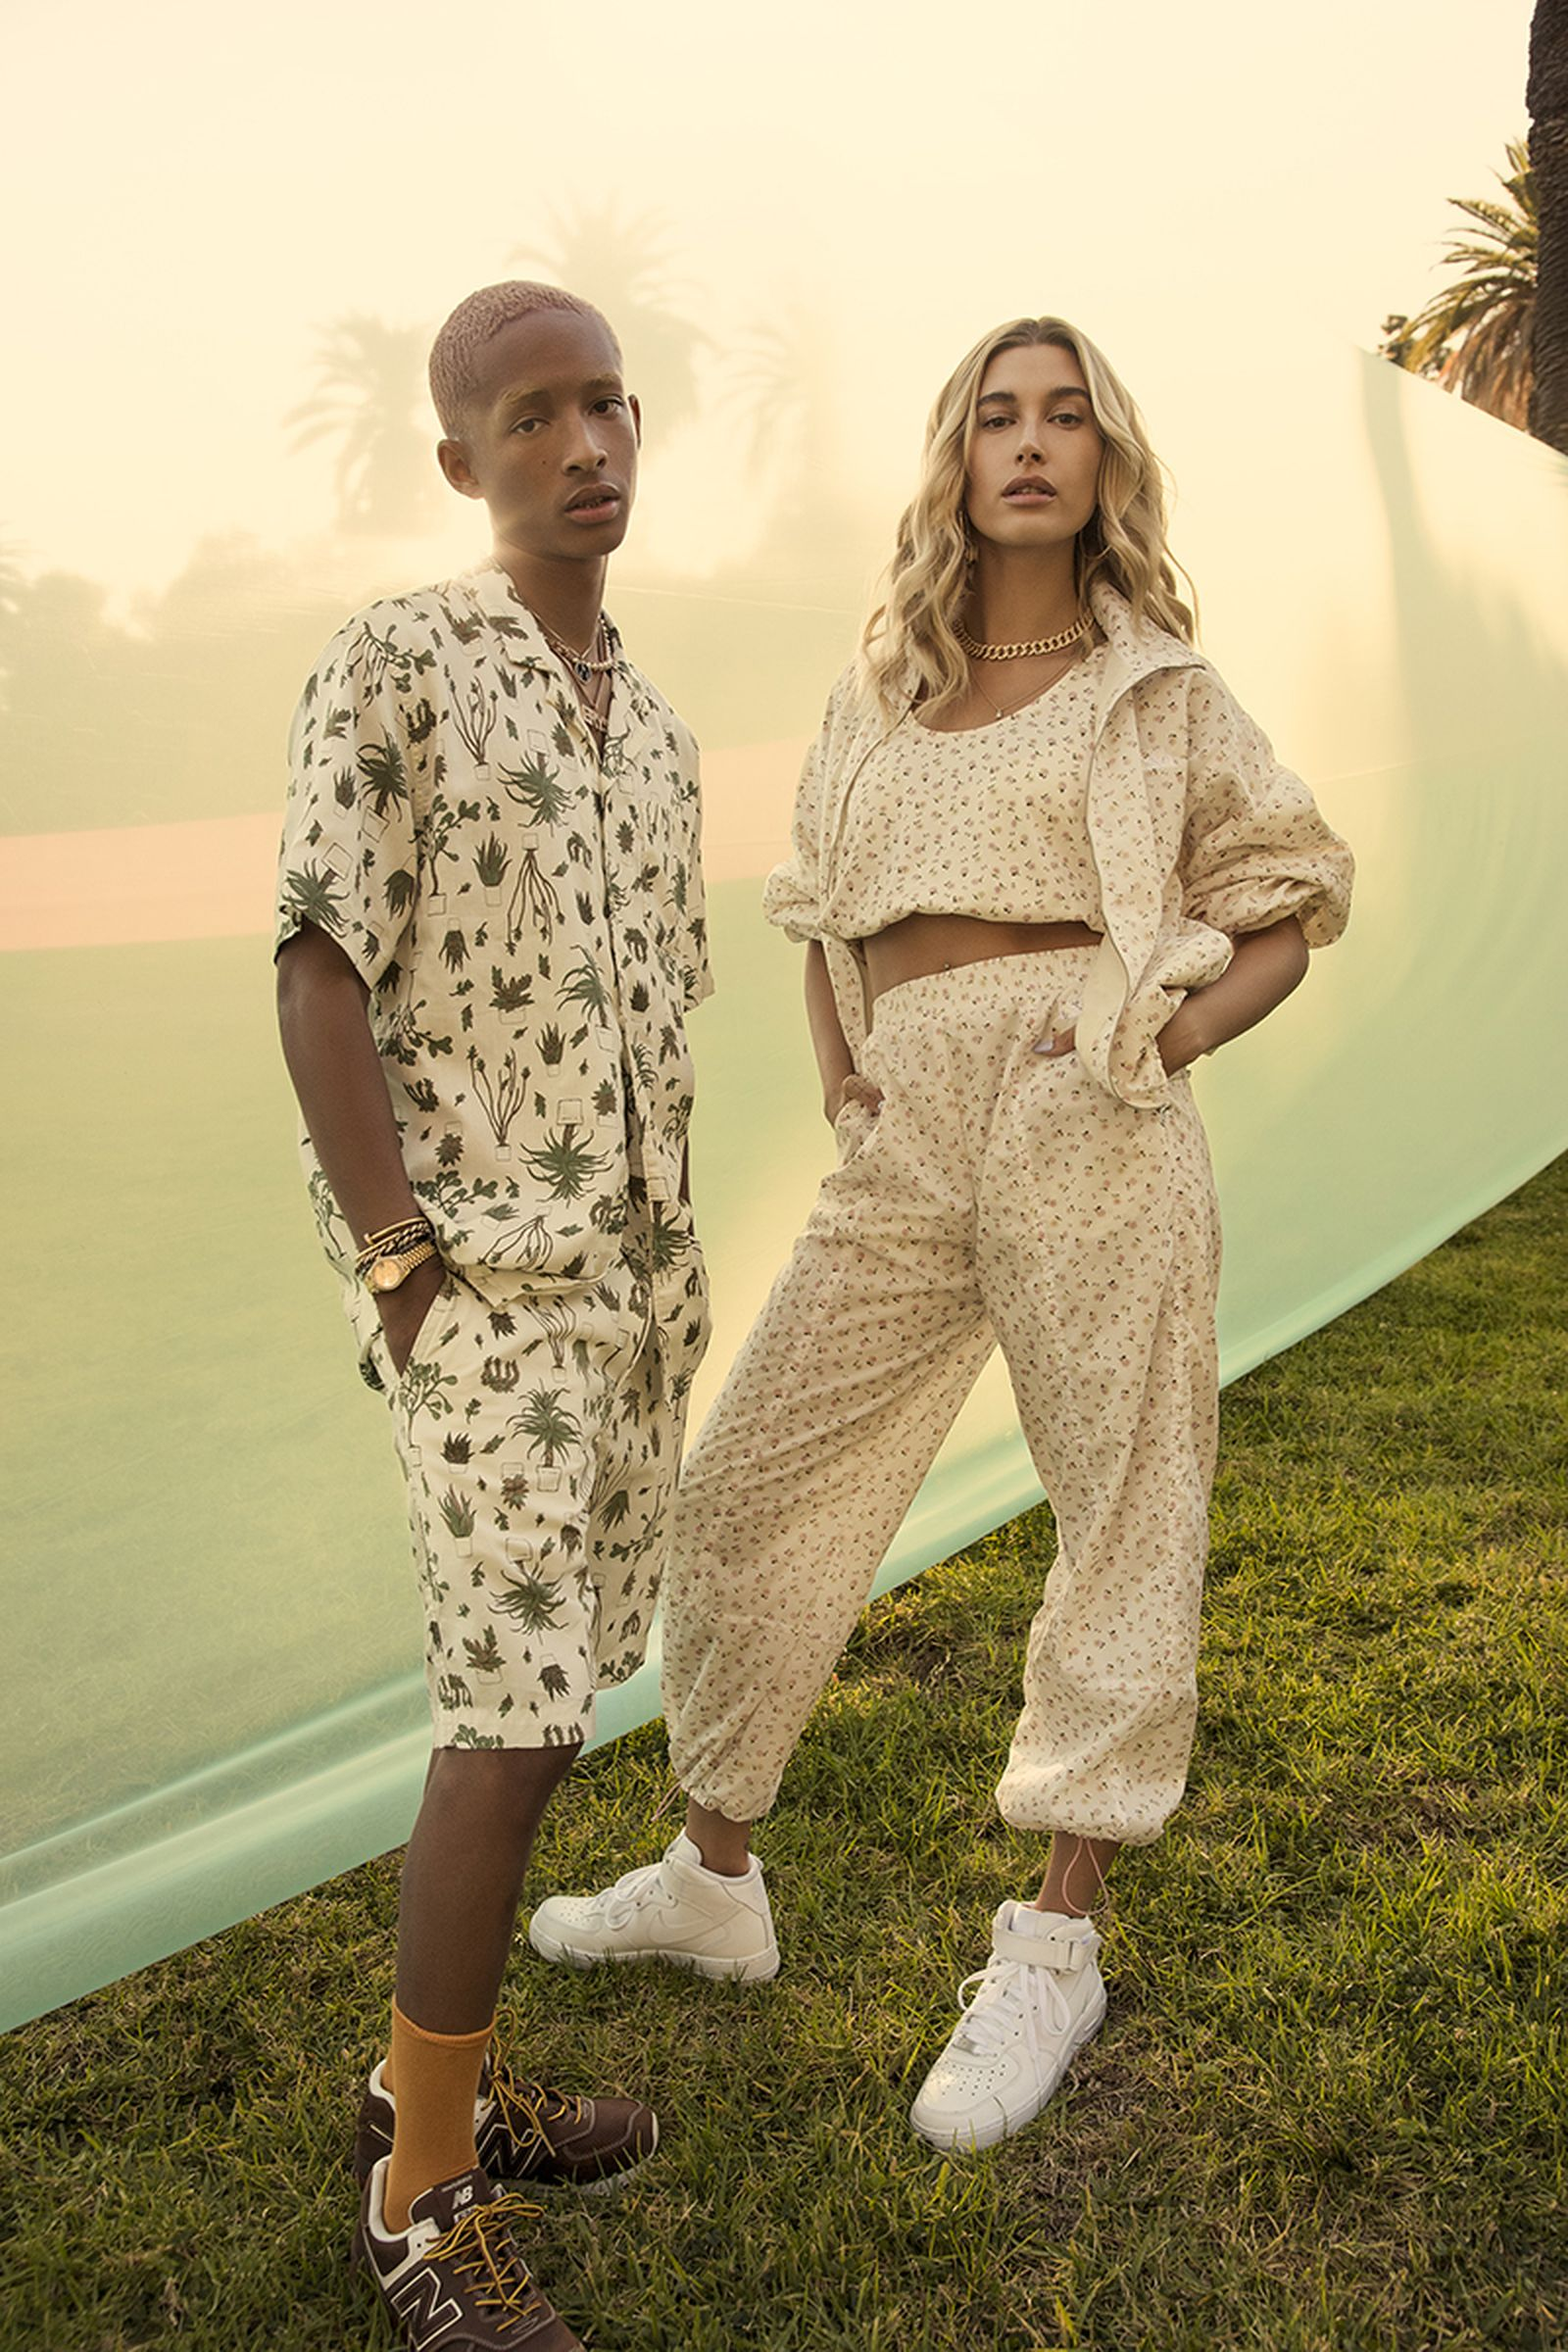 Jaden Smith and Hailey Bieber Levi's campaign